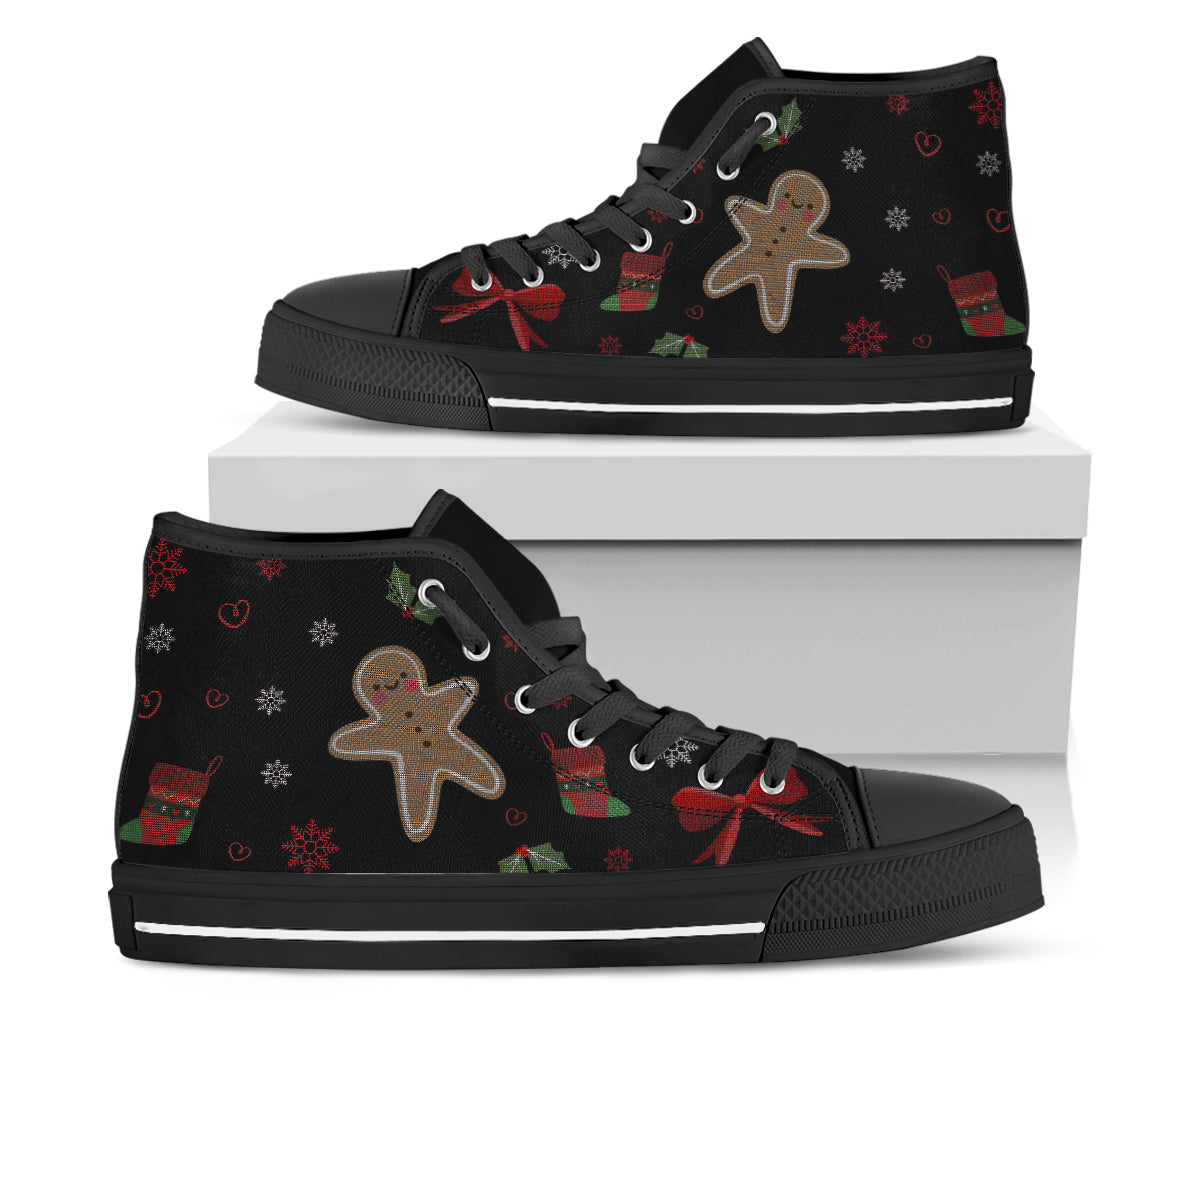 Gingerbread Man Ugly Christmas Sneakers